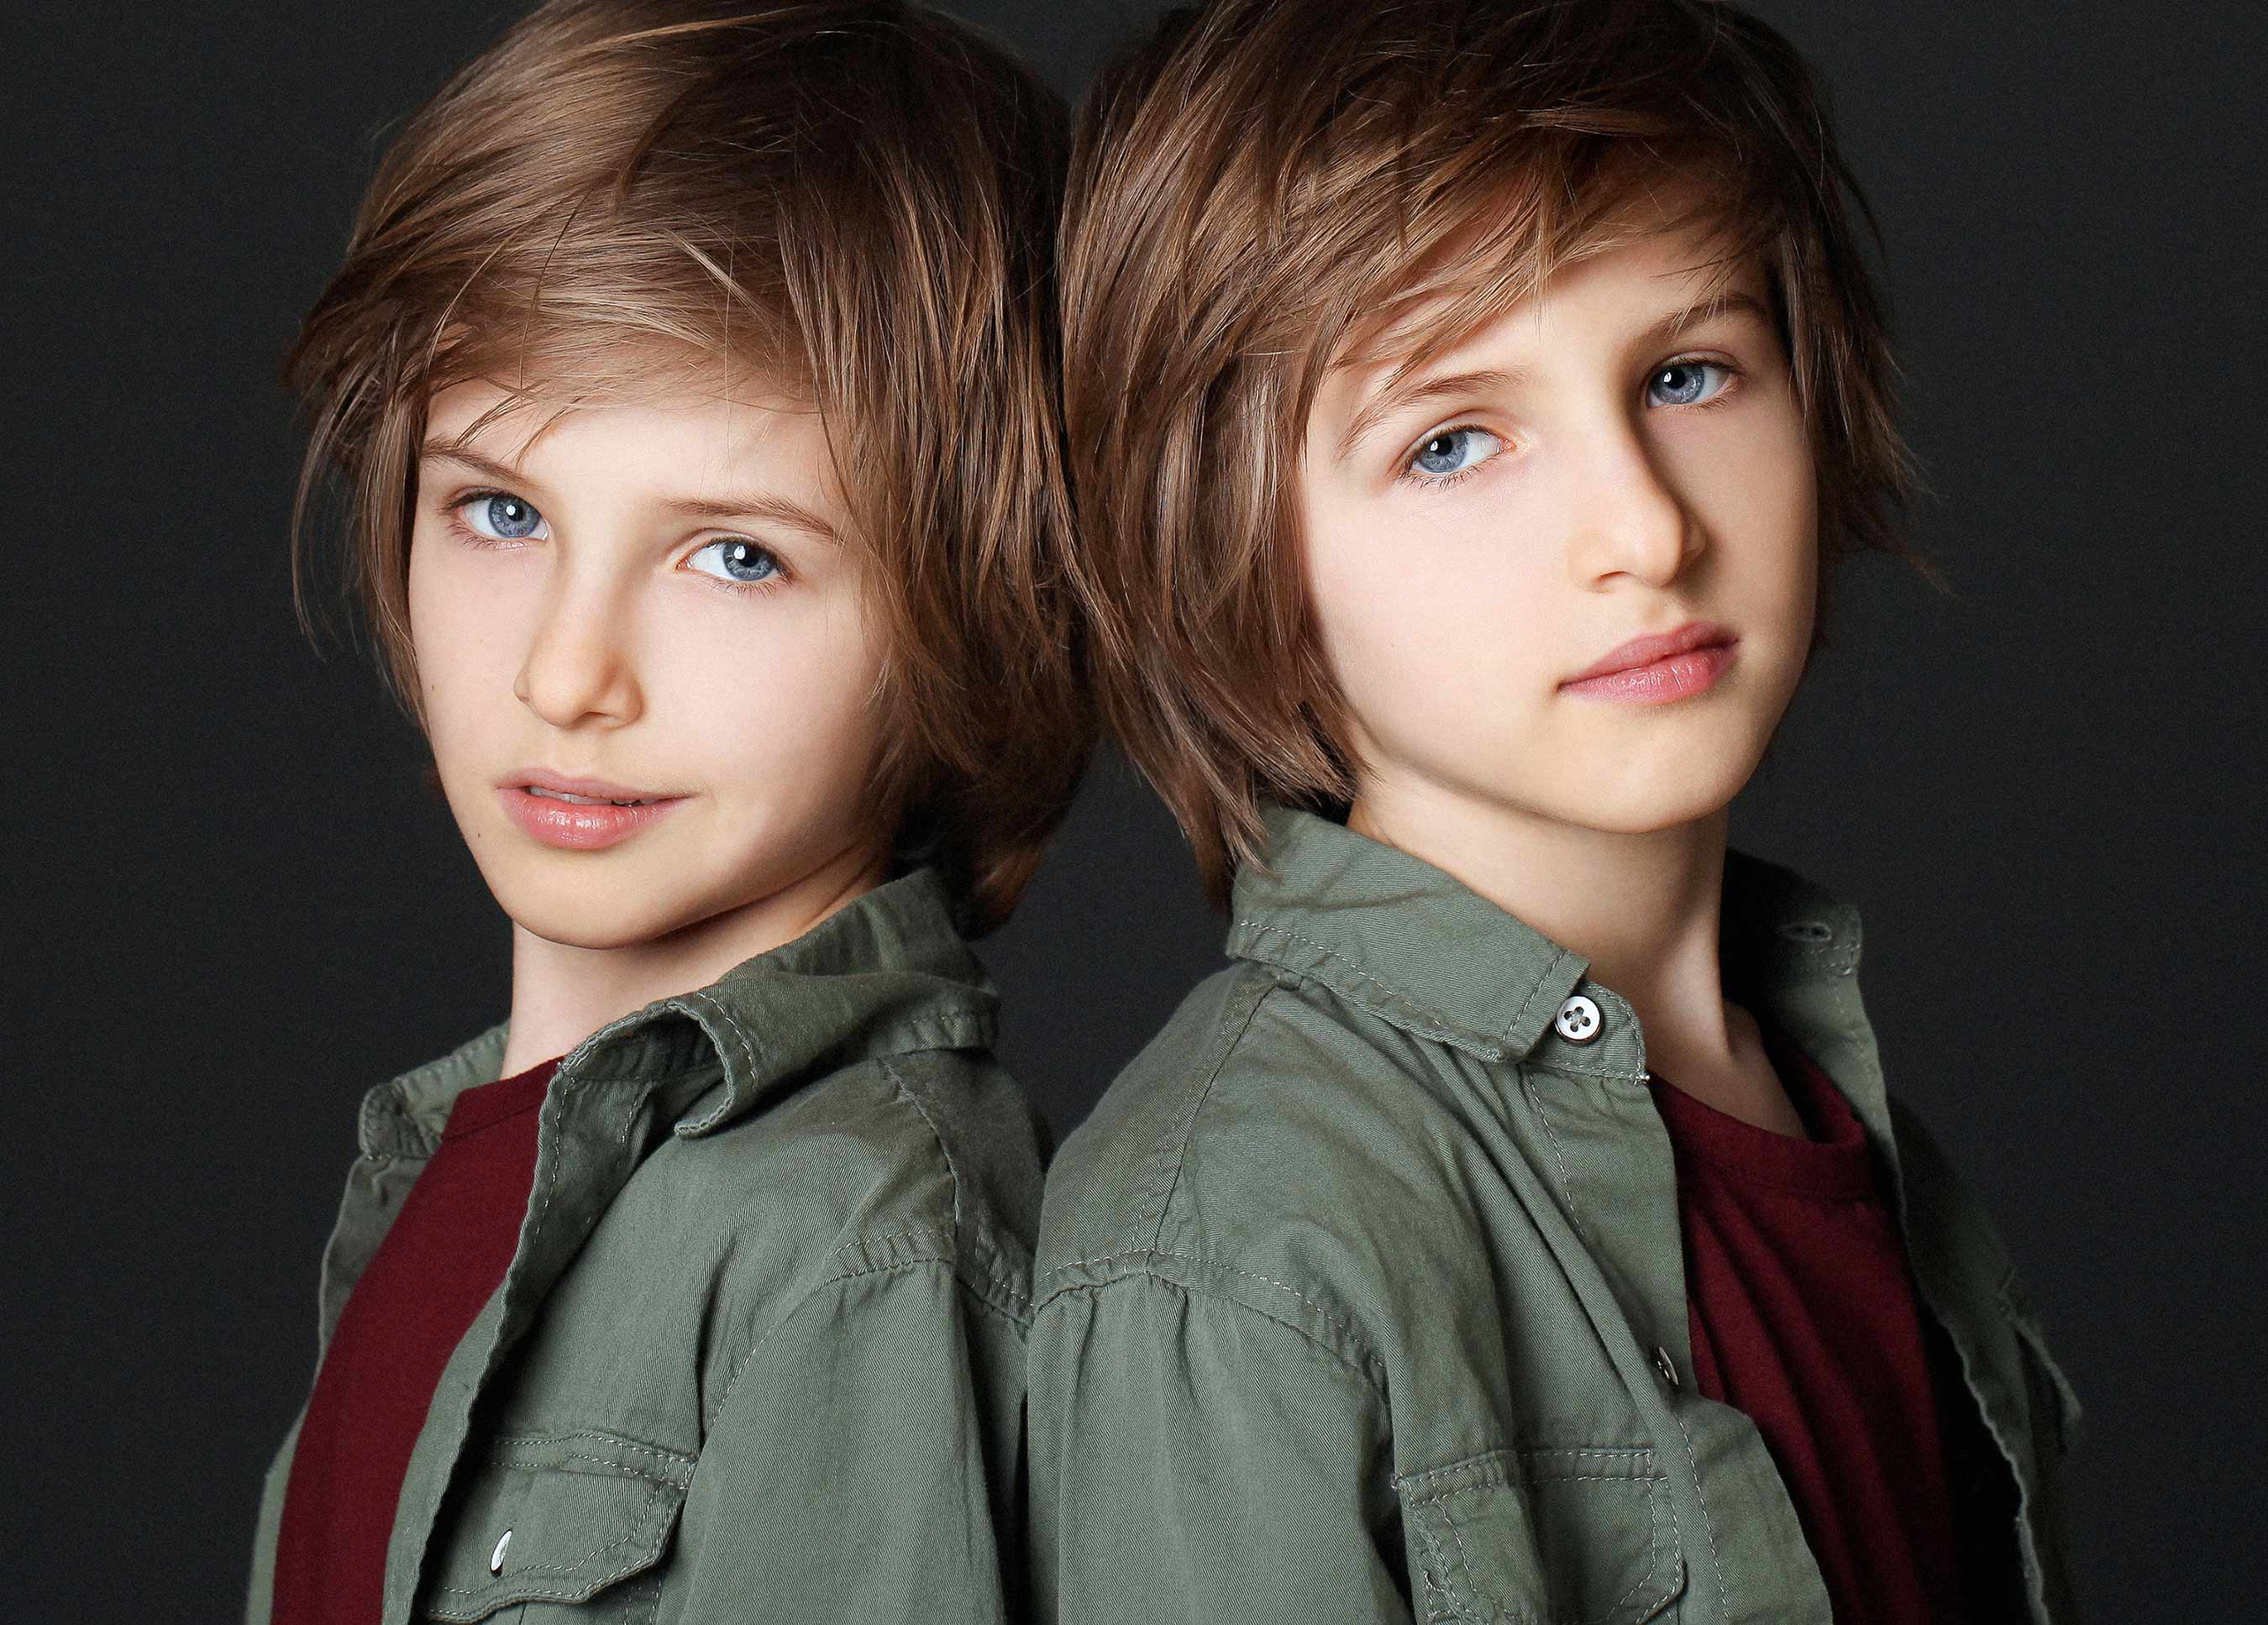 web_actors-la-nyc-detroit-child-twins-movies-headshots-paula-tizzard-facebook